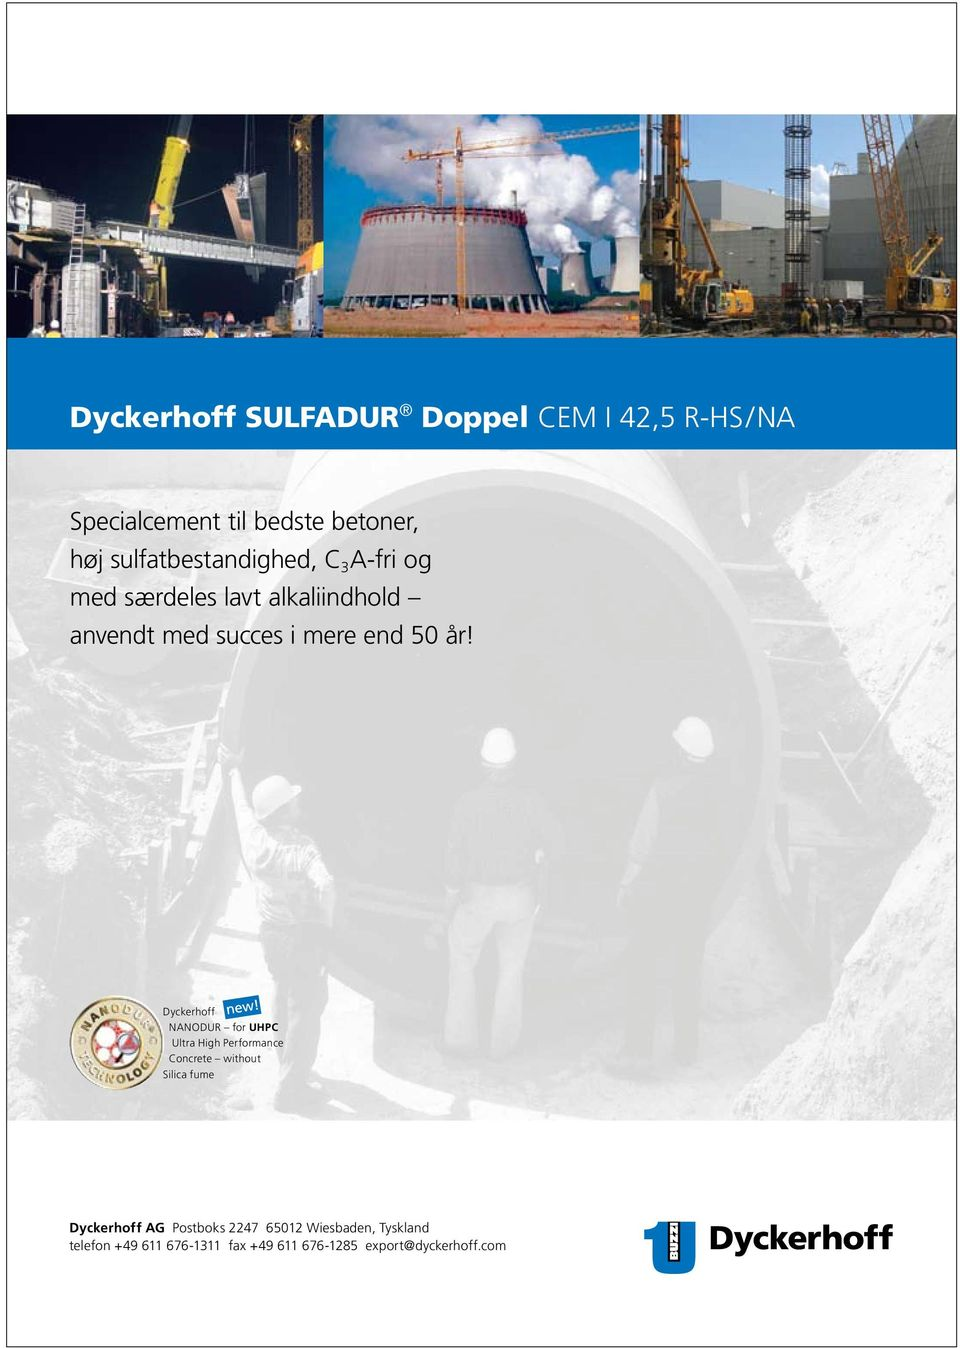 Dyckerhoff NANODUR for UHPC Ultra High Performance Concrete without Silica fume Dyckerhoff AG Postboks